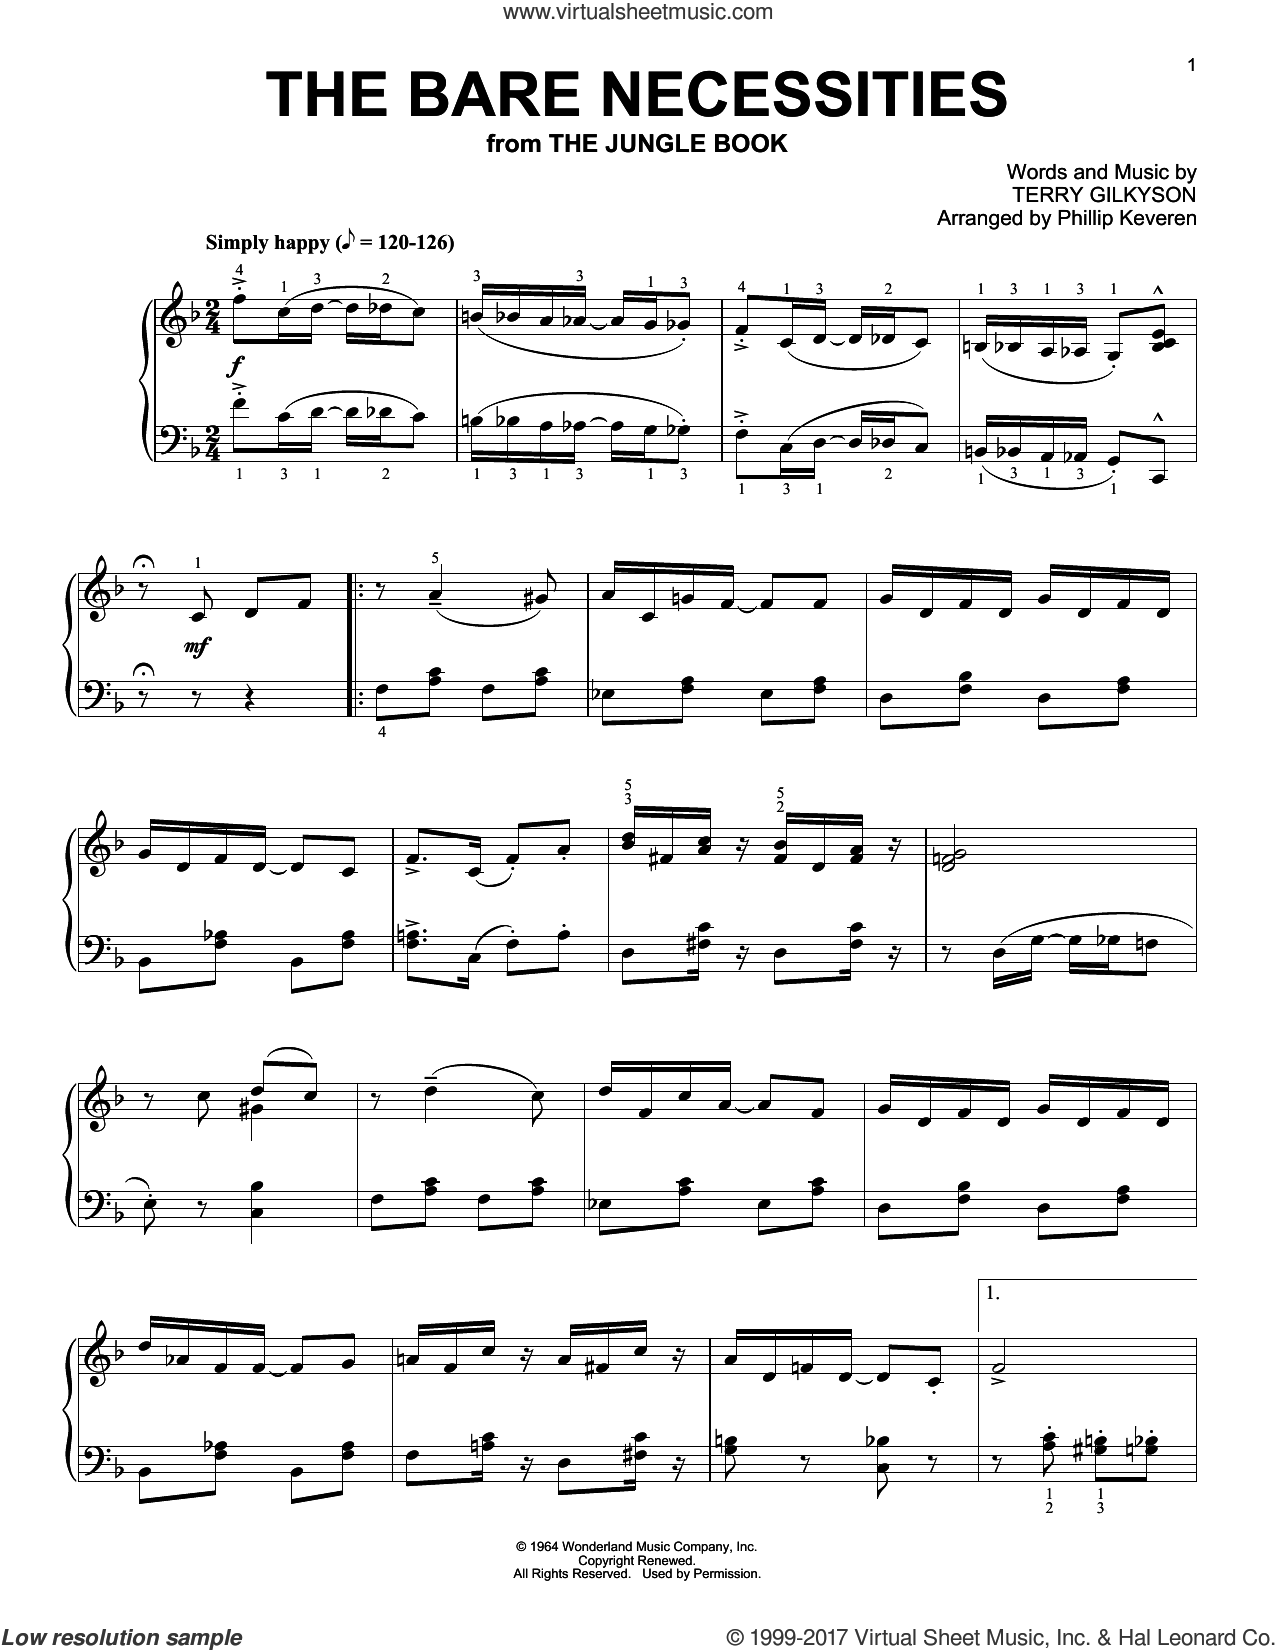 The Bare Necessities [Ragtime version] (from The Jungle Book) (arr. Phillip Keveren) sheet music for piano solo by Terry Gilkyson and Phillip Keveren, intermediate skill level